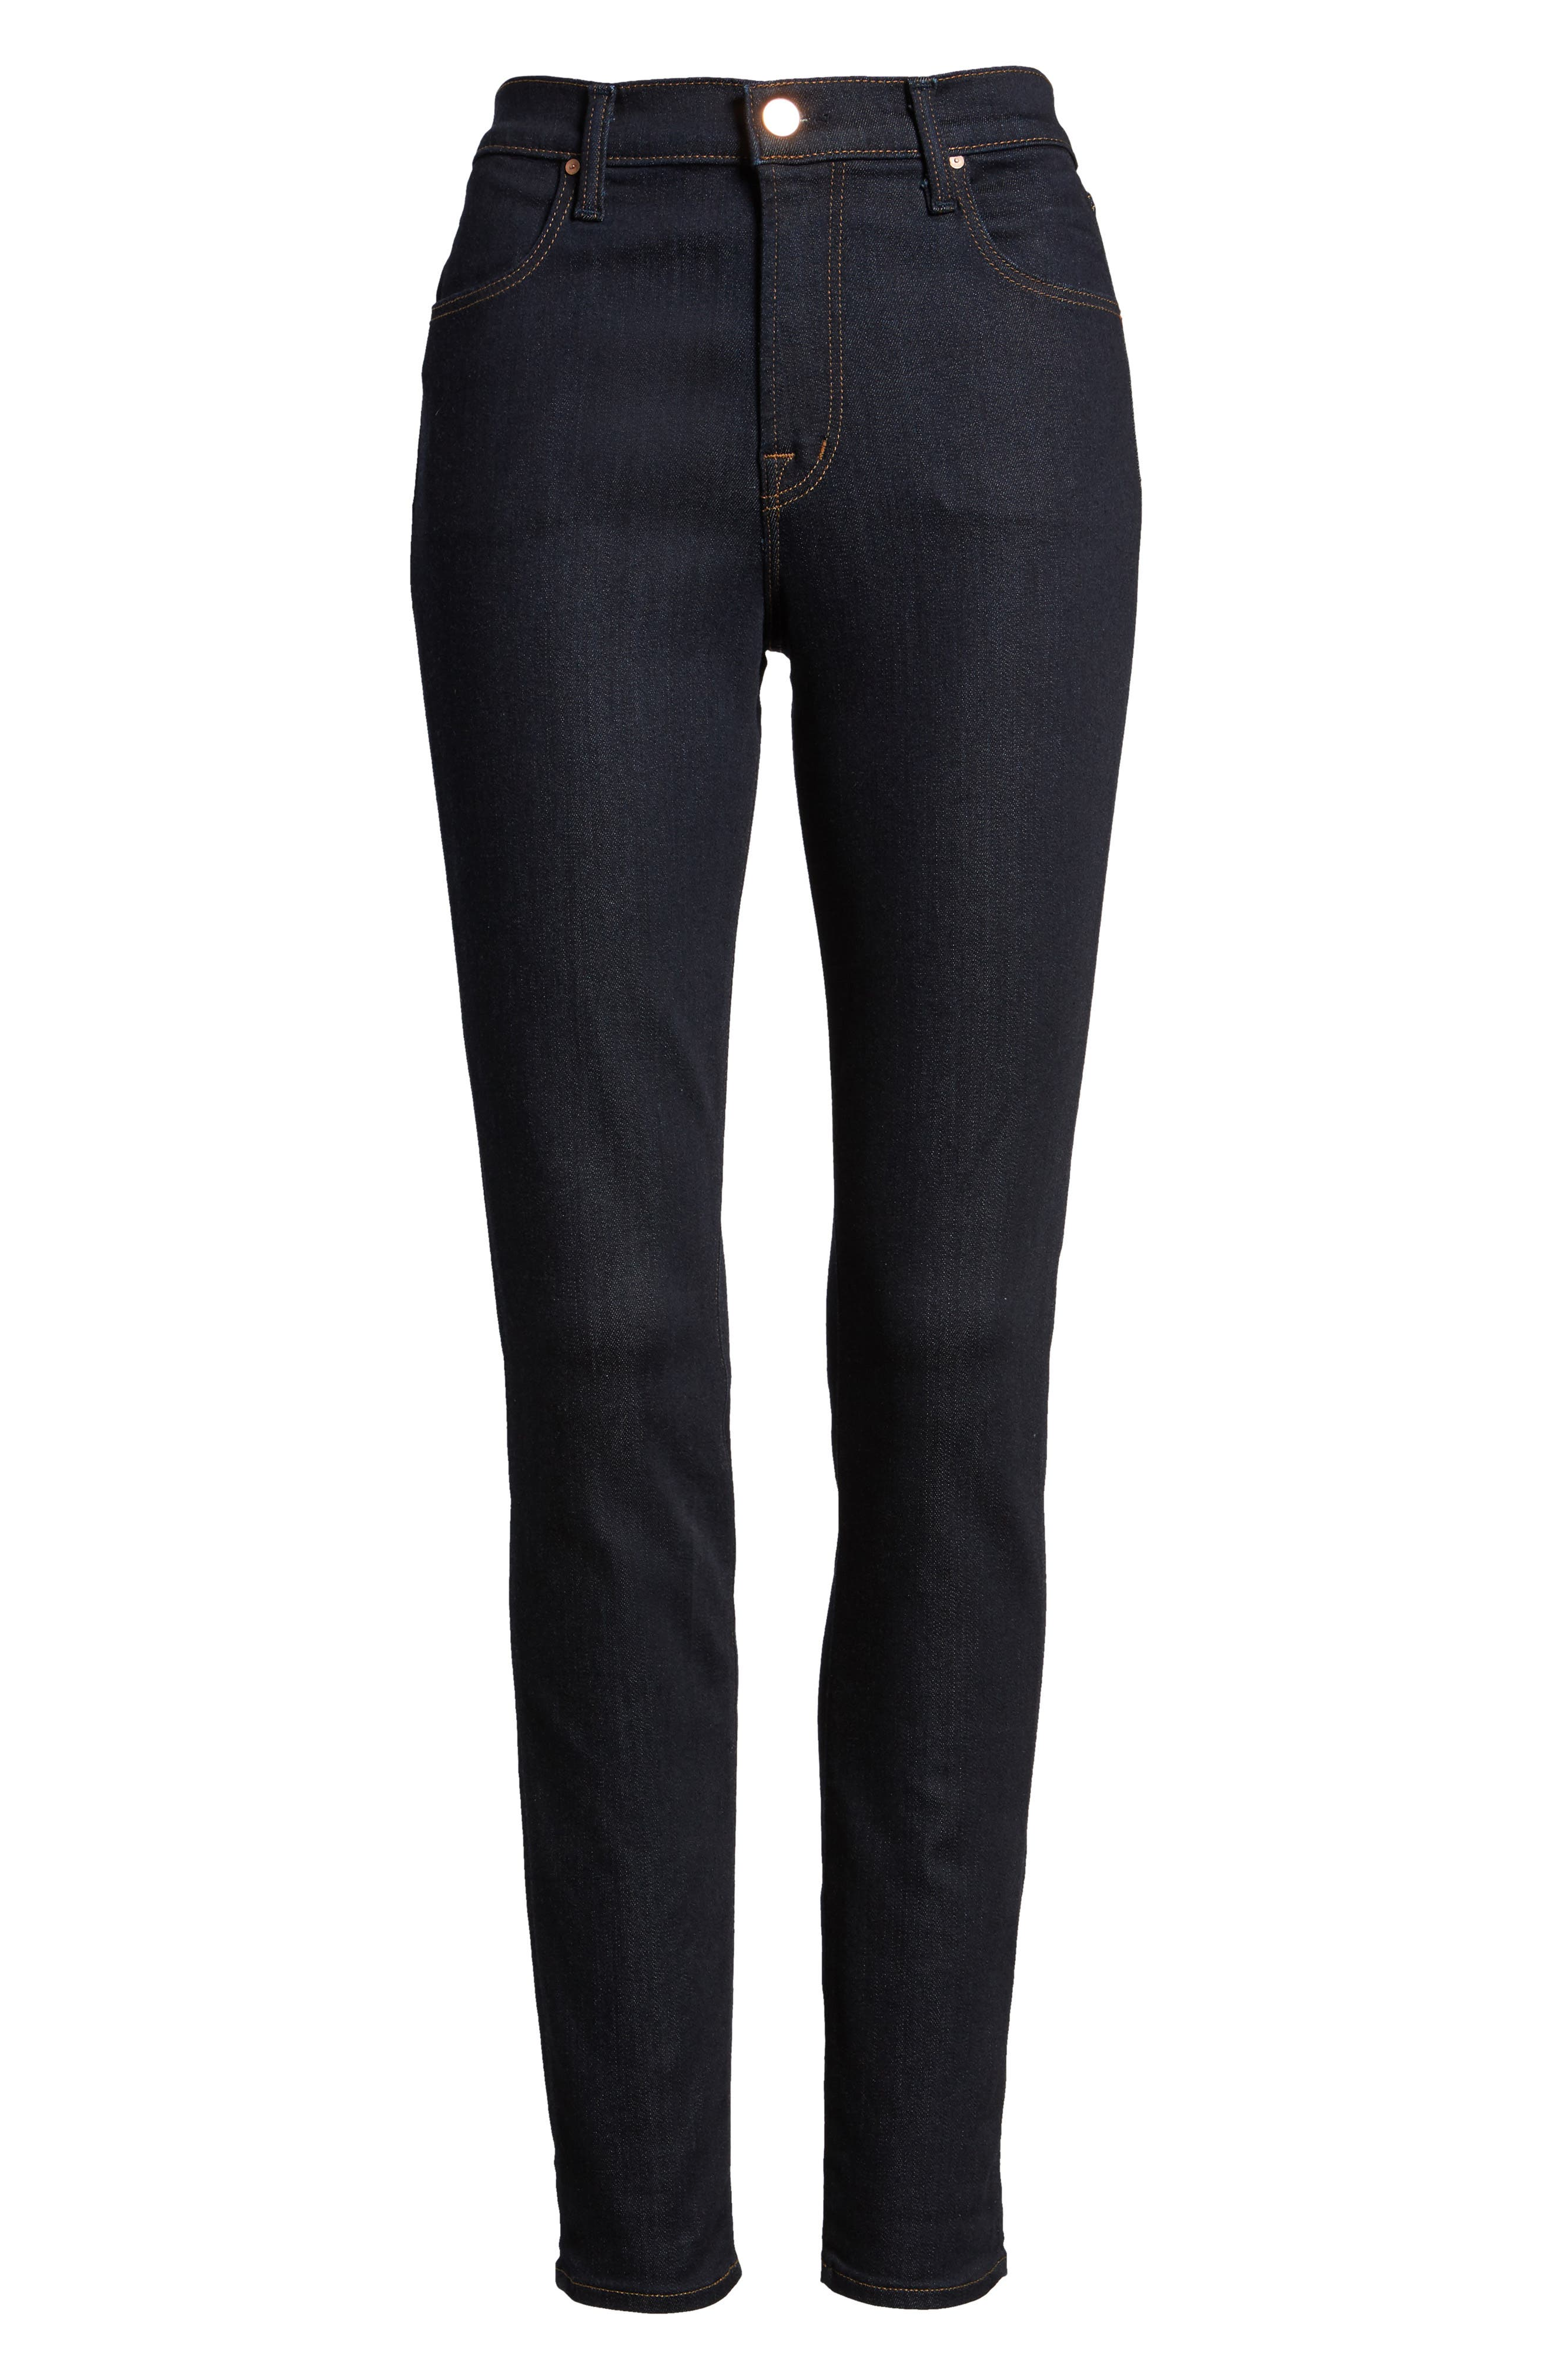 Maria High Waist Super Skinny Jeans,                             Alternate thumbnail 6, color,                             AFTER DARK